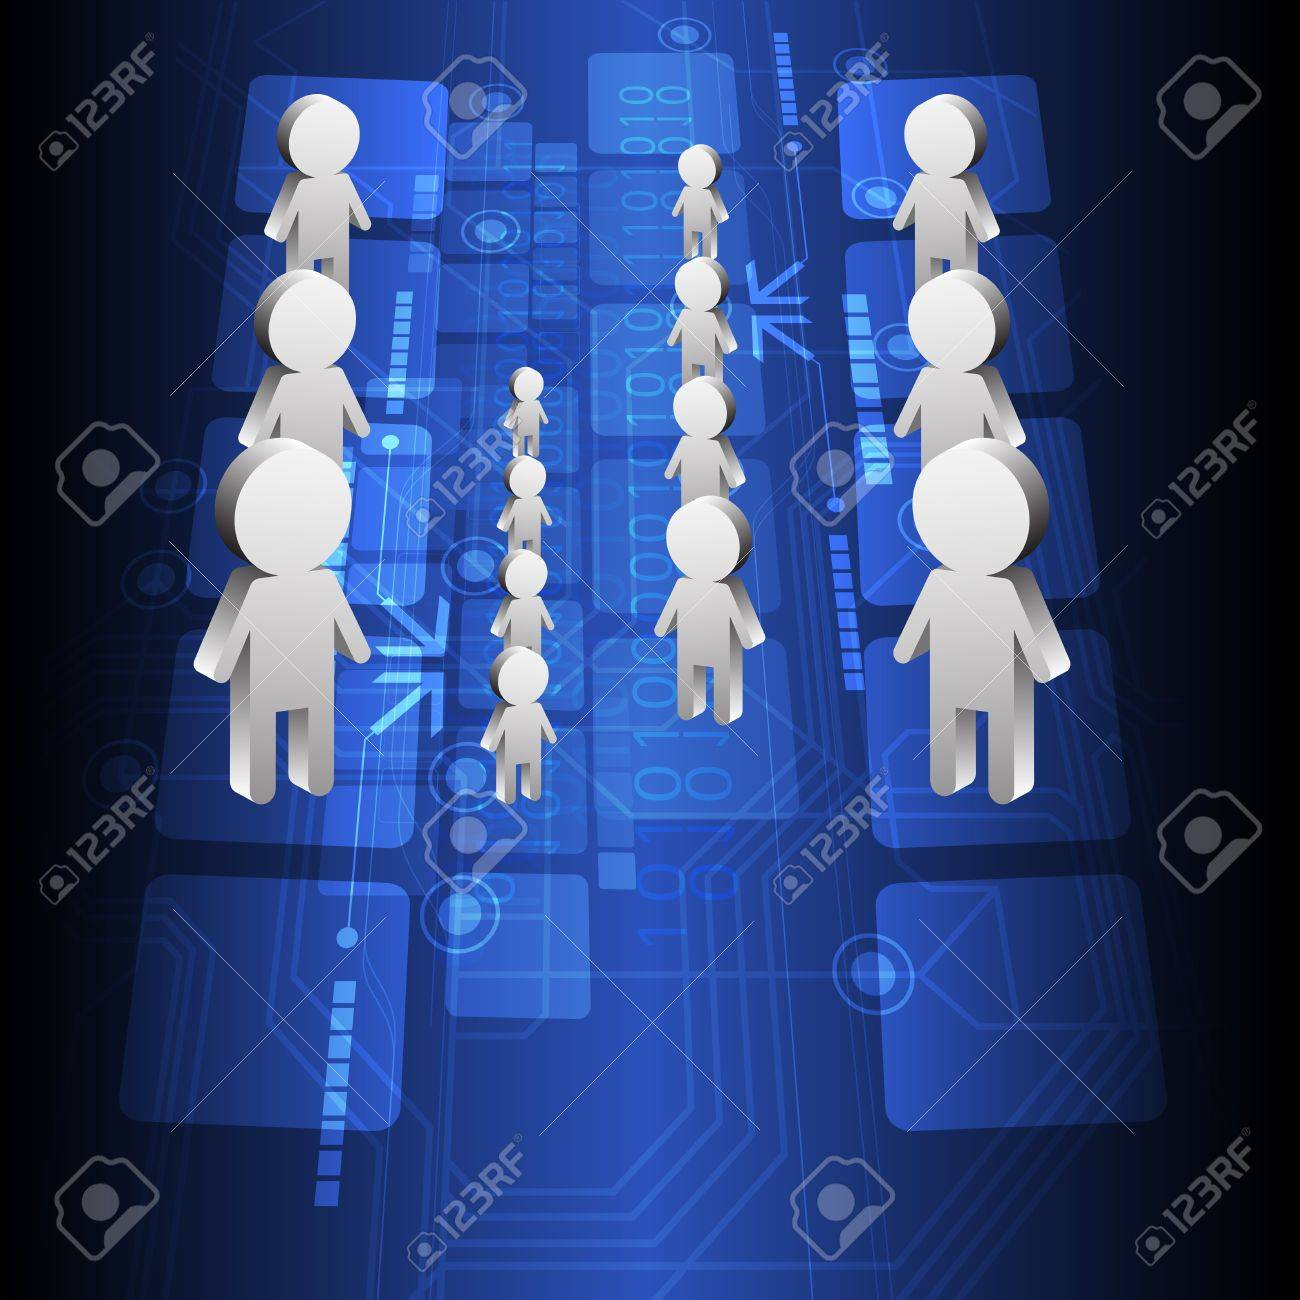 people and technology background design Stock Vector - 15235503